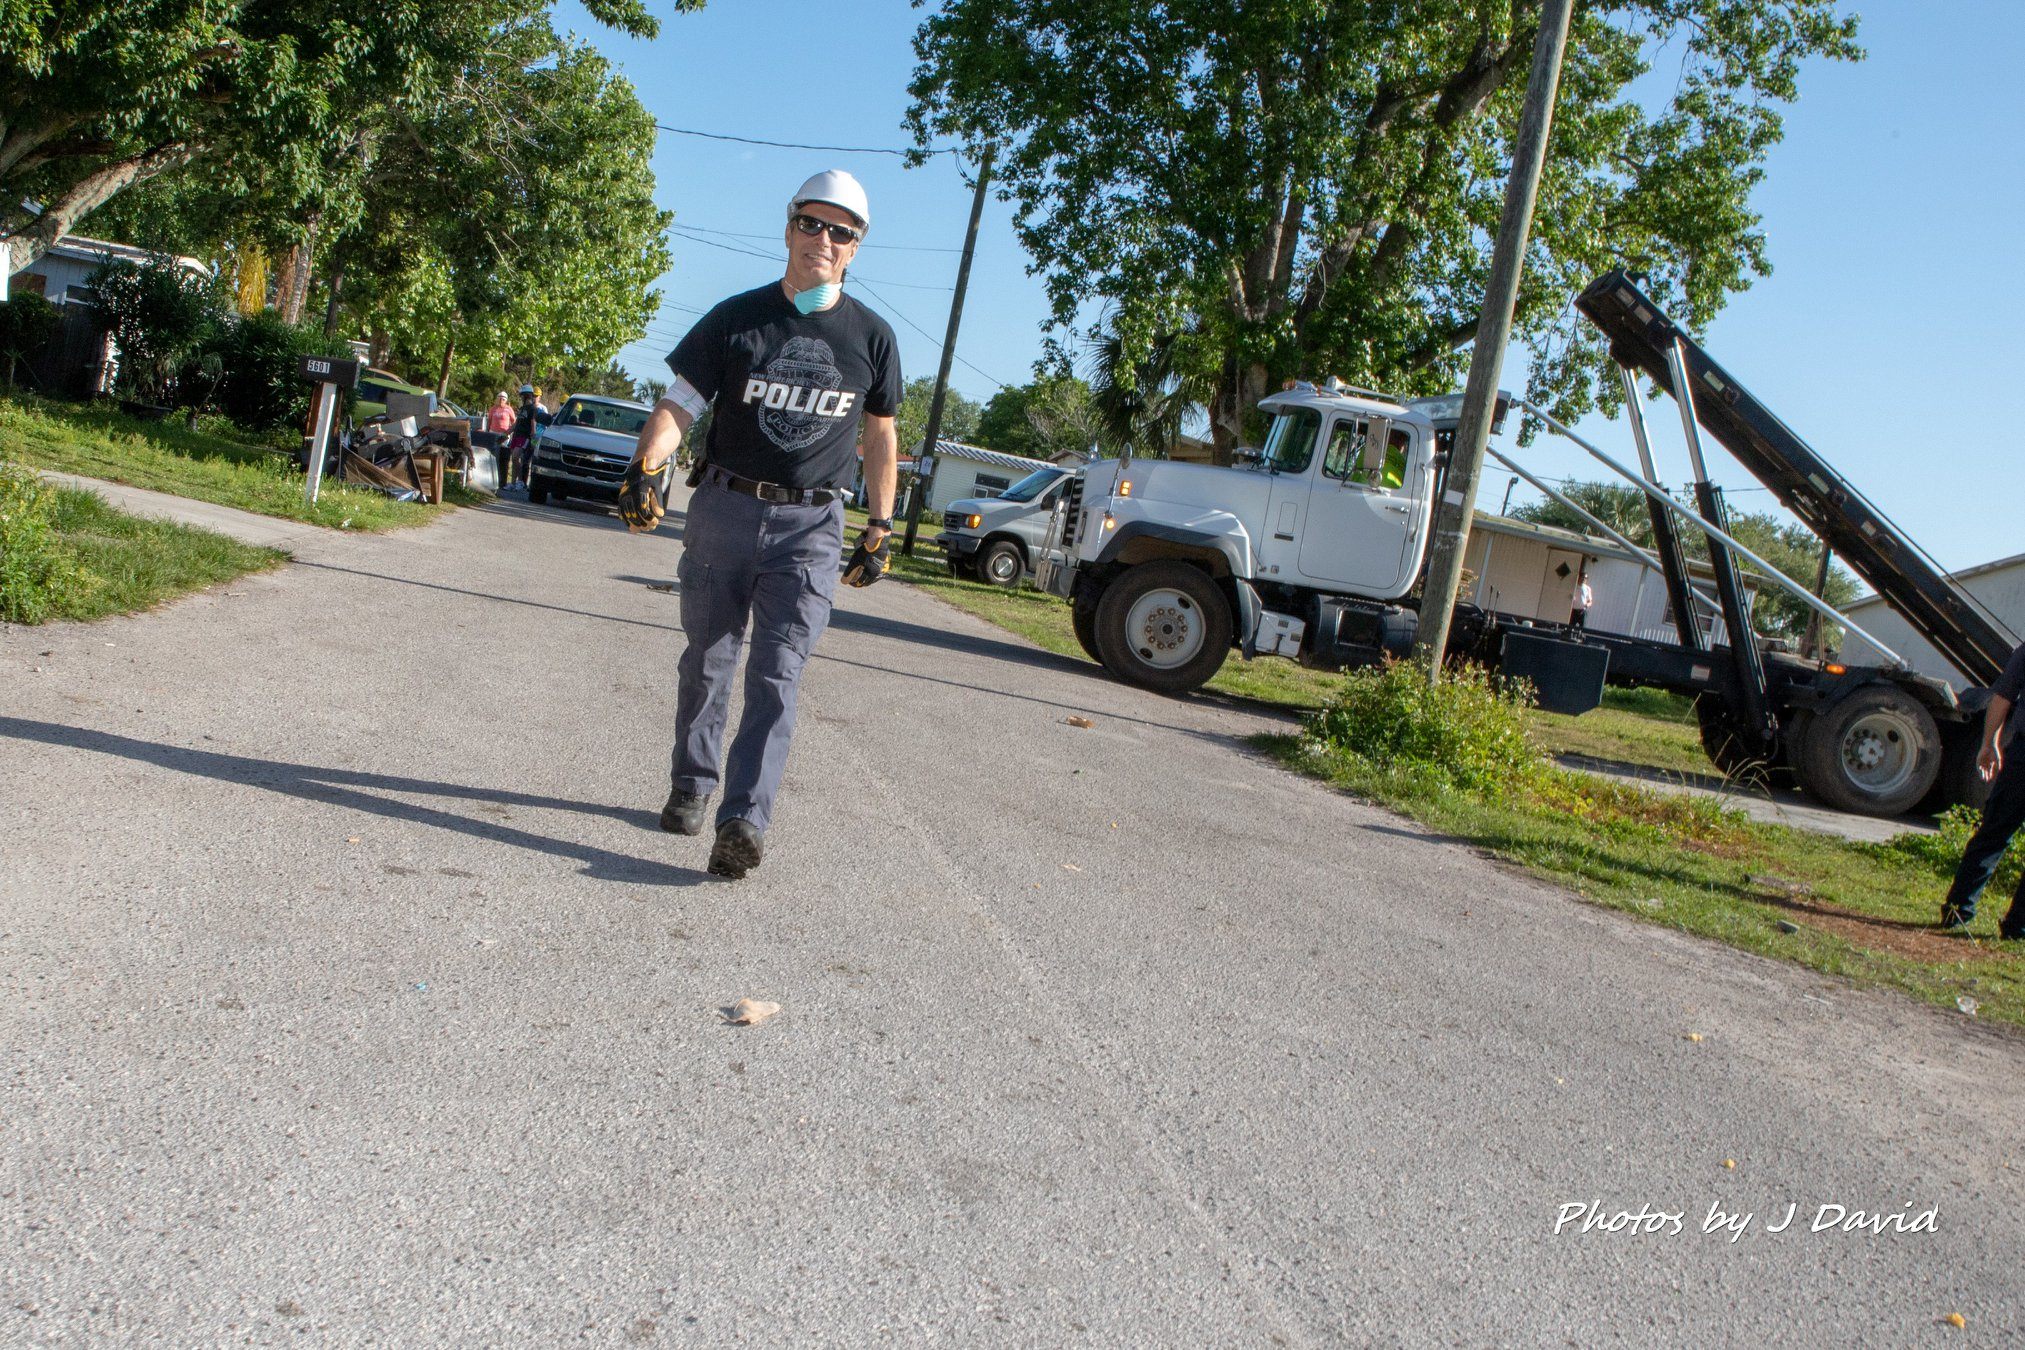 Town & Country Villas Neighborhood Clean-up Day